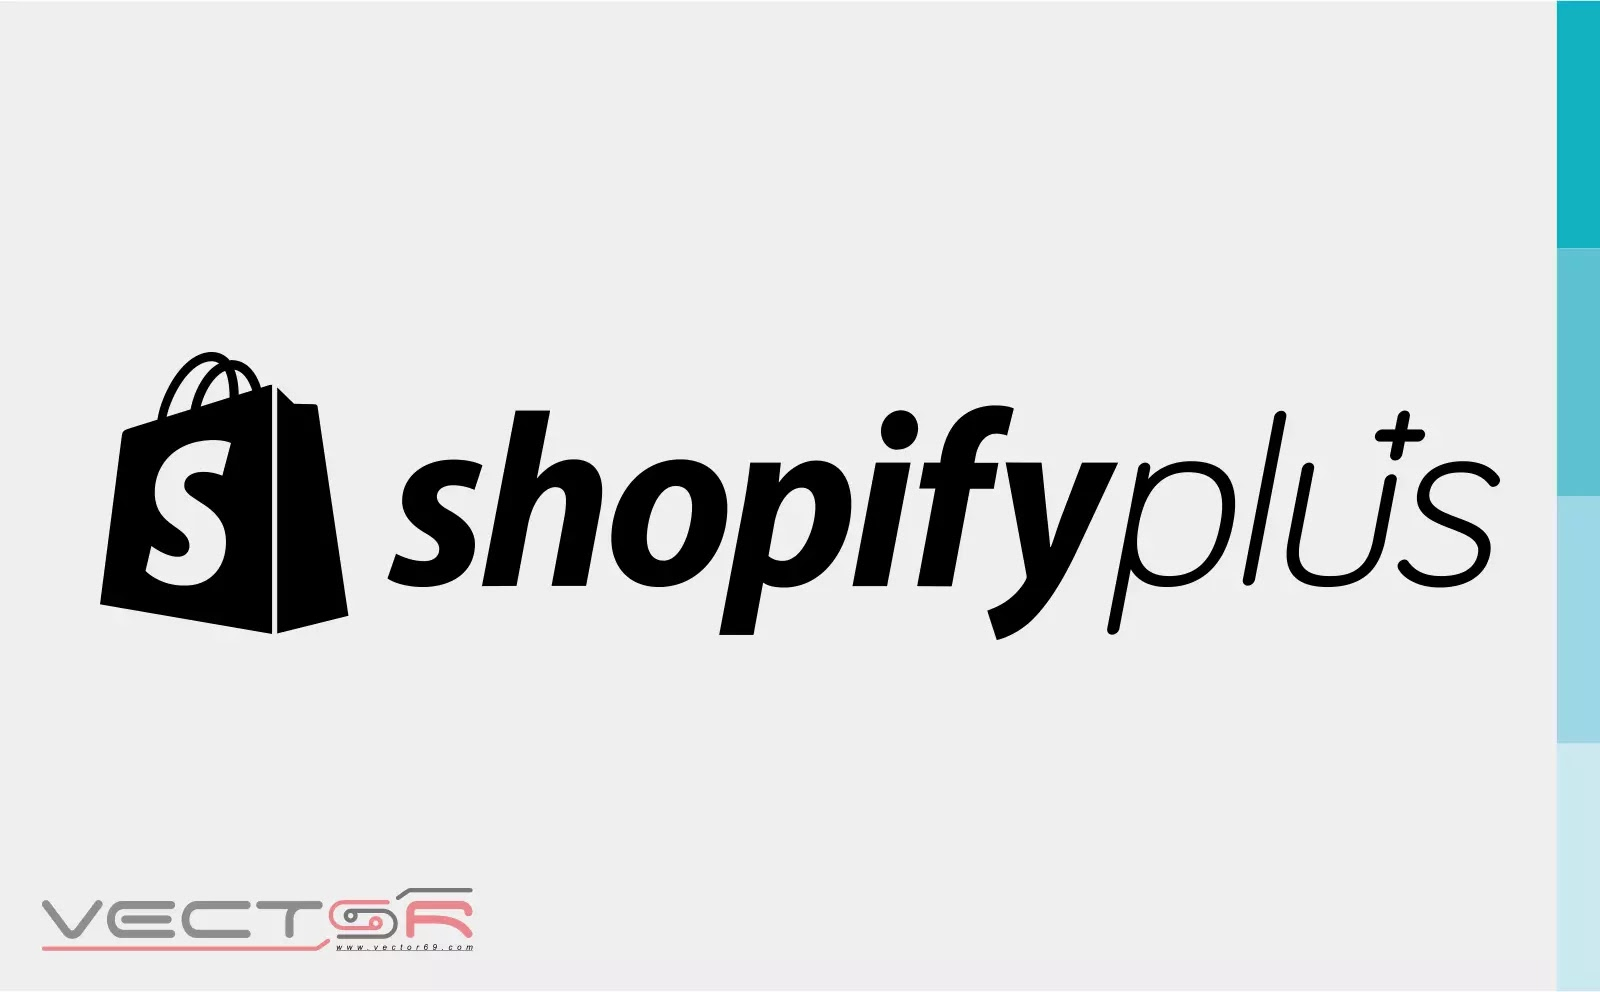 Shopify Plus Logo - Download Vector File SVG (Scalable Vector Graphics)